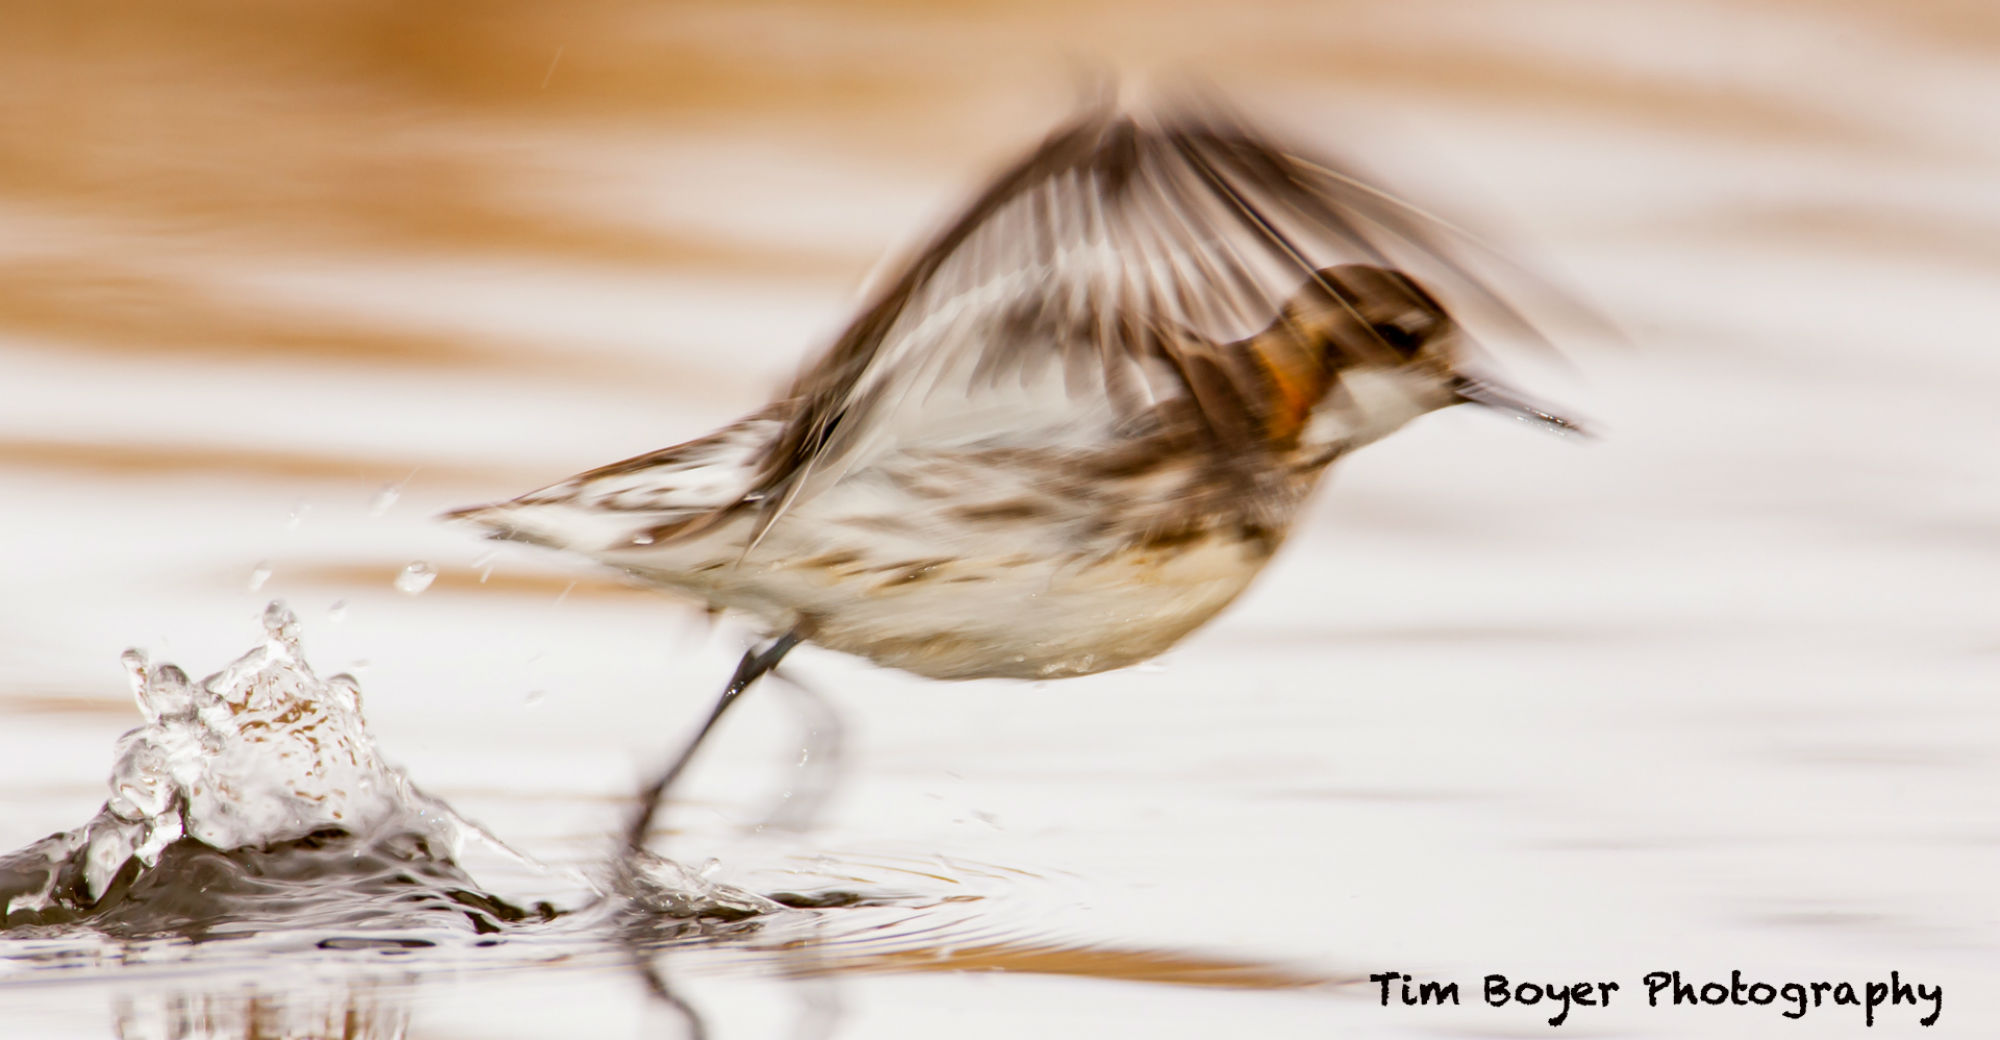 bird photography tips tim boyer photography image